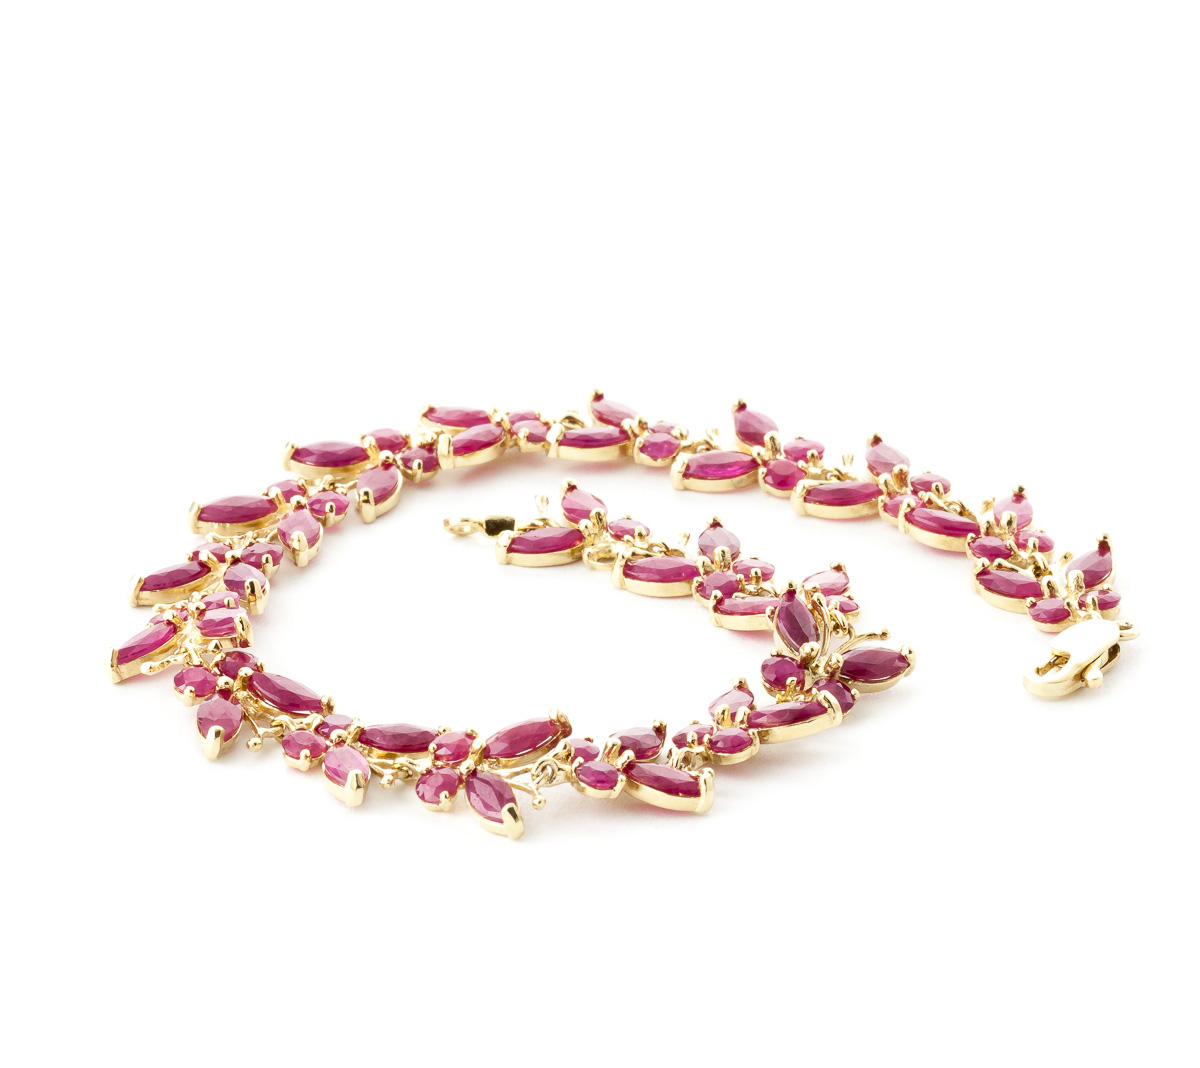 Ruby Butterfly Bracelet 16.5ctw in 9ct Gold